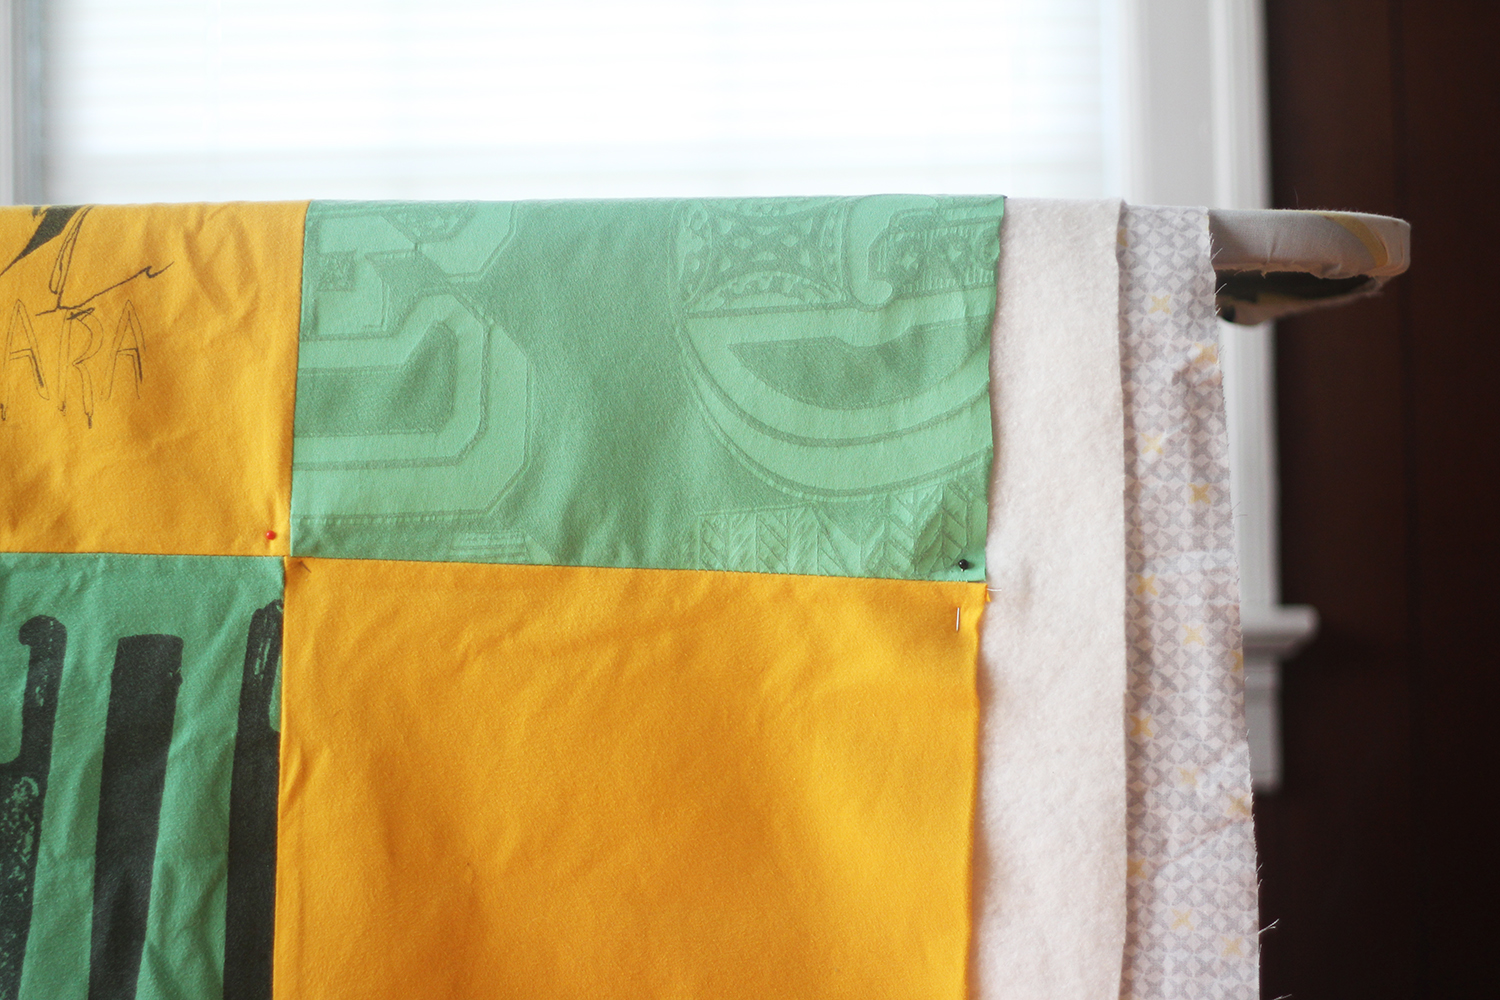 DIY T-Shirt Quilt: Patience is so, so important when quilting for the first time. You can do it!